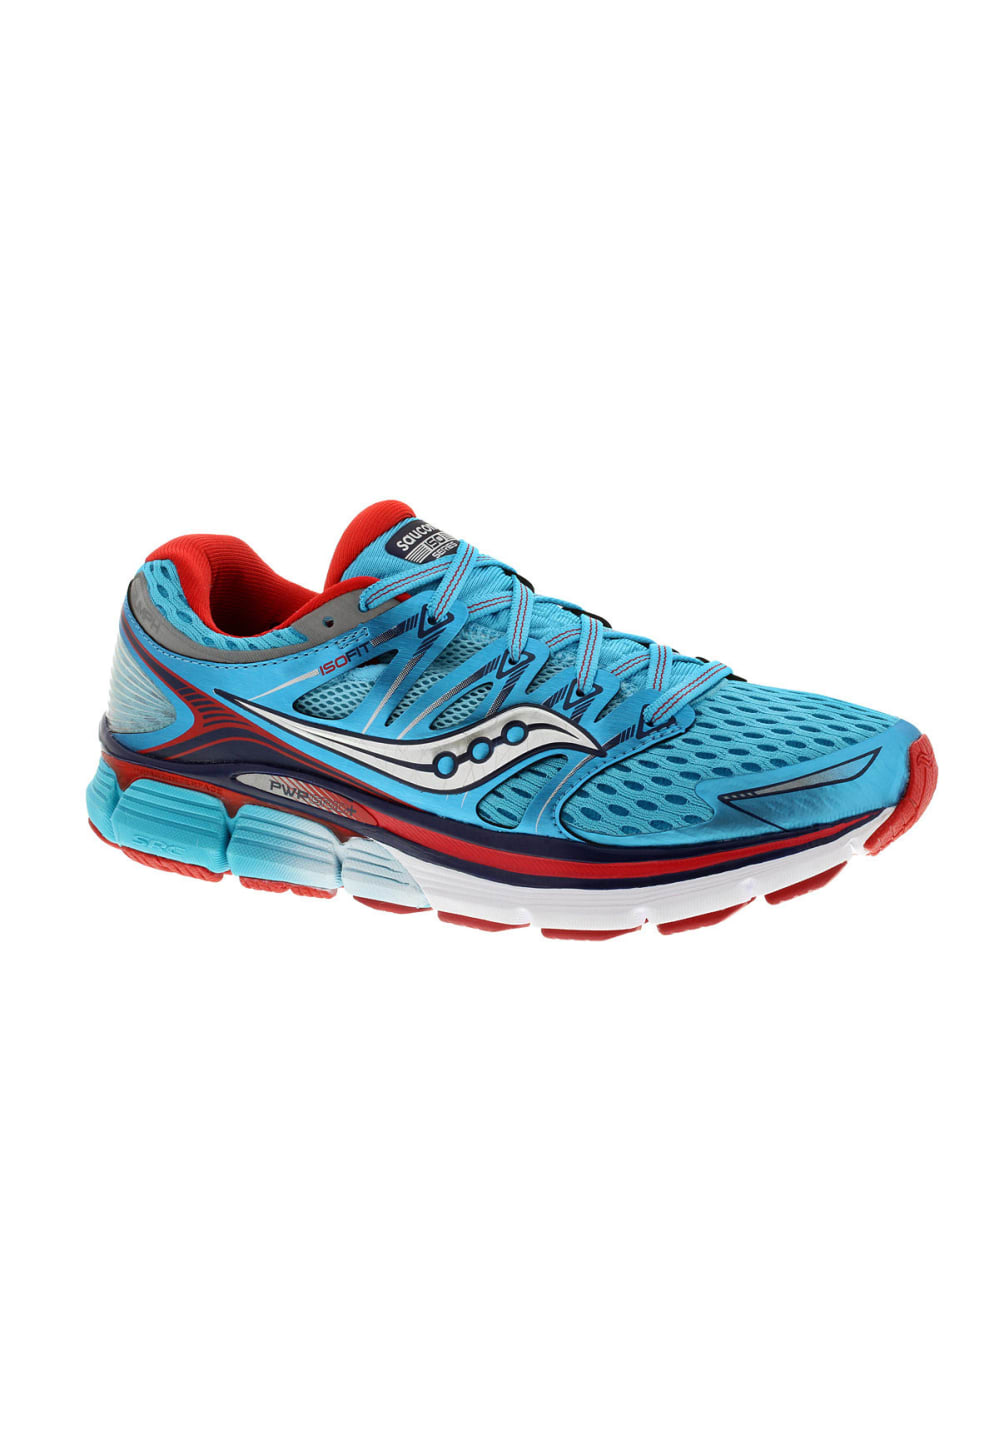 a60638b2e2 Saucony Triumph Iso - Running shoes for Women - Blue